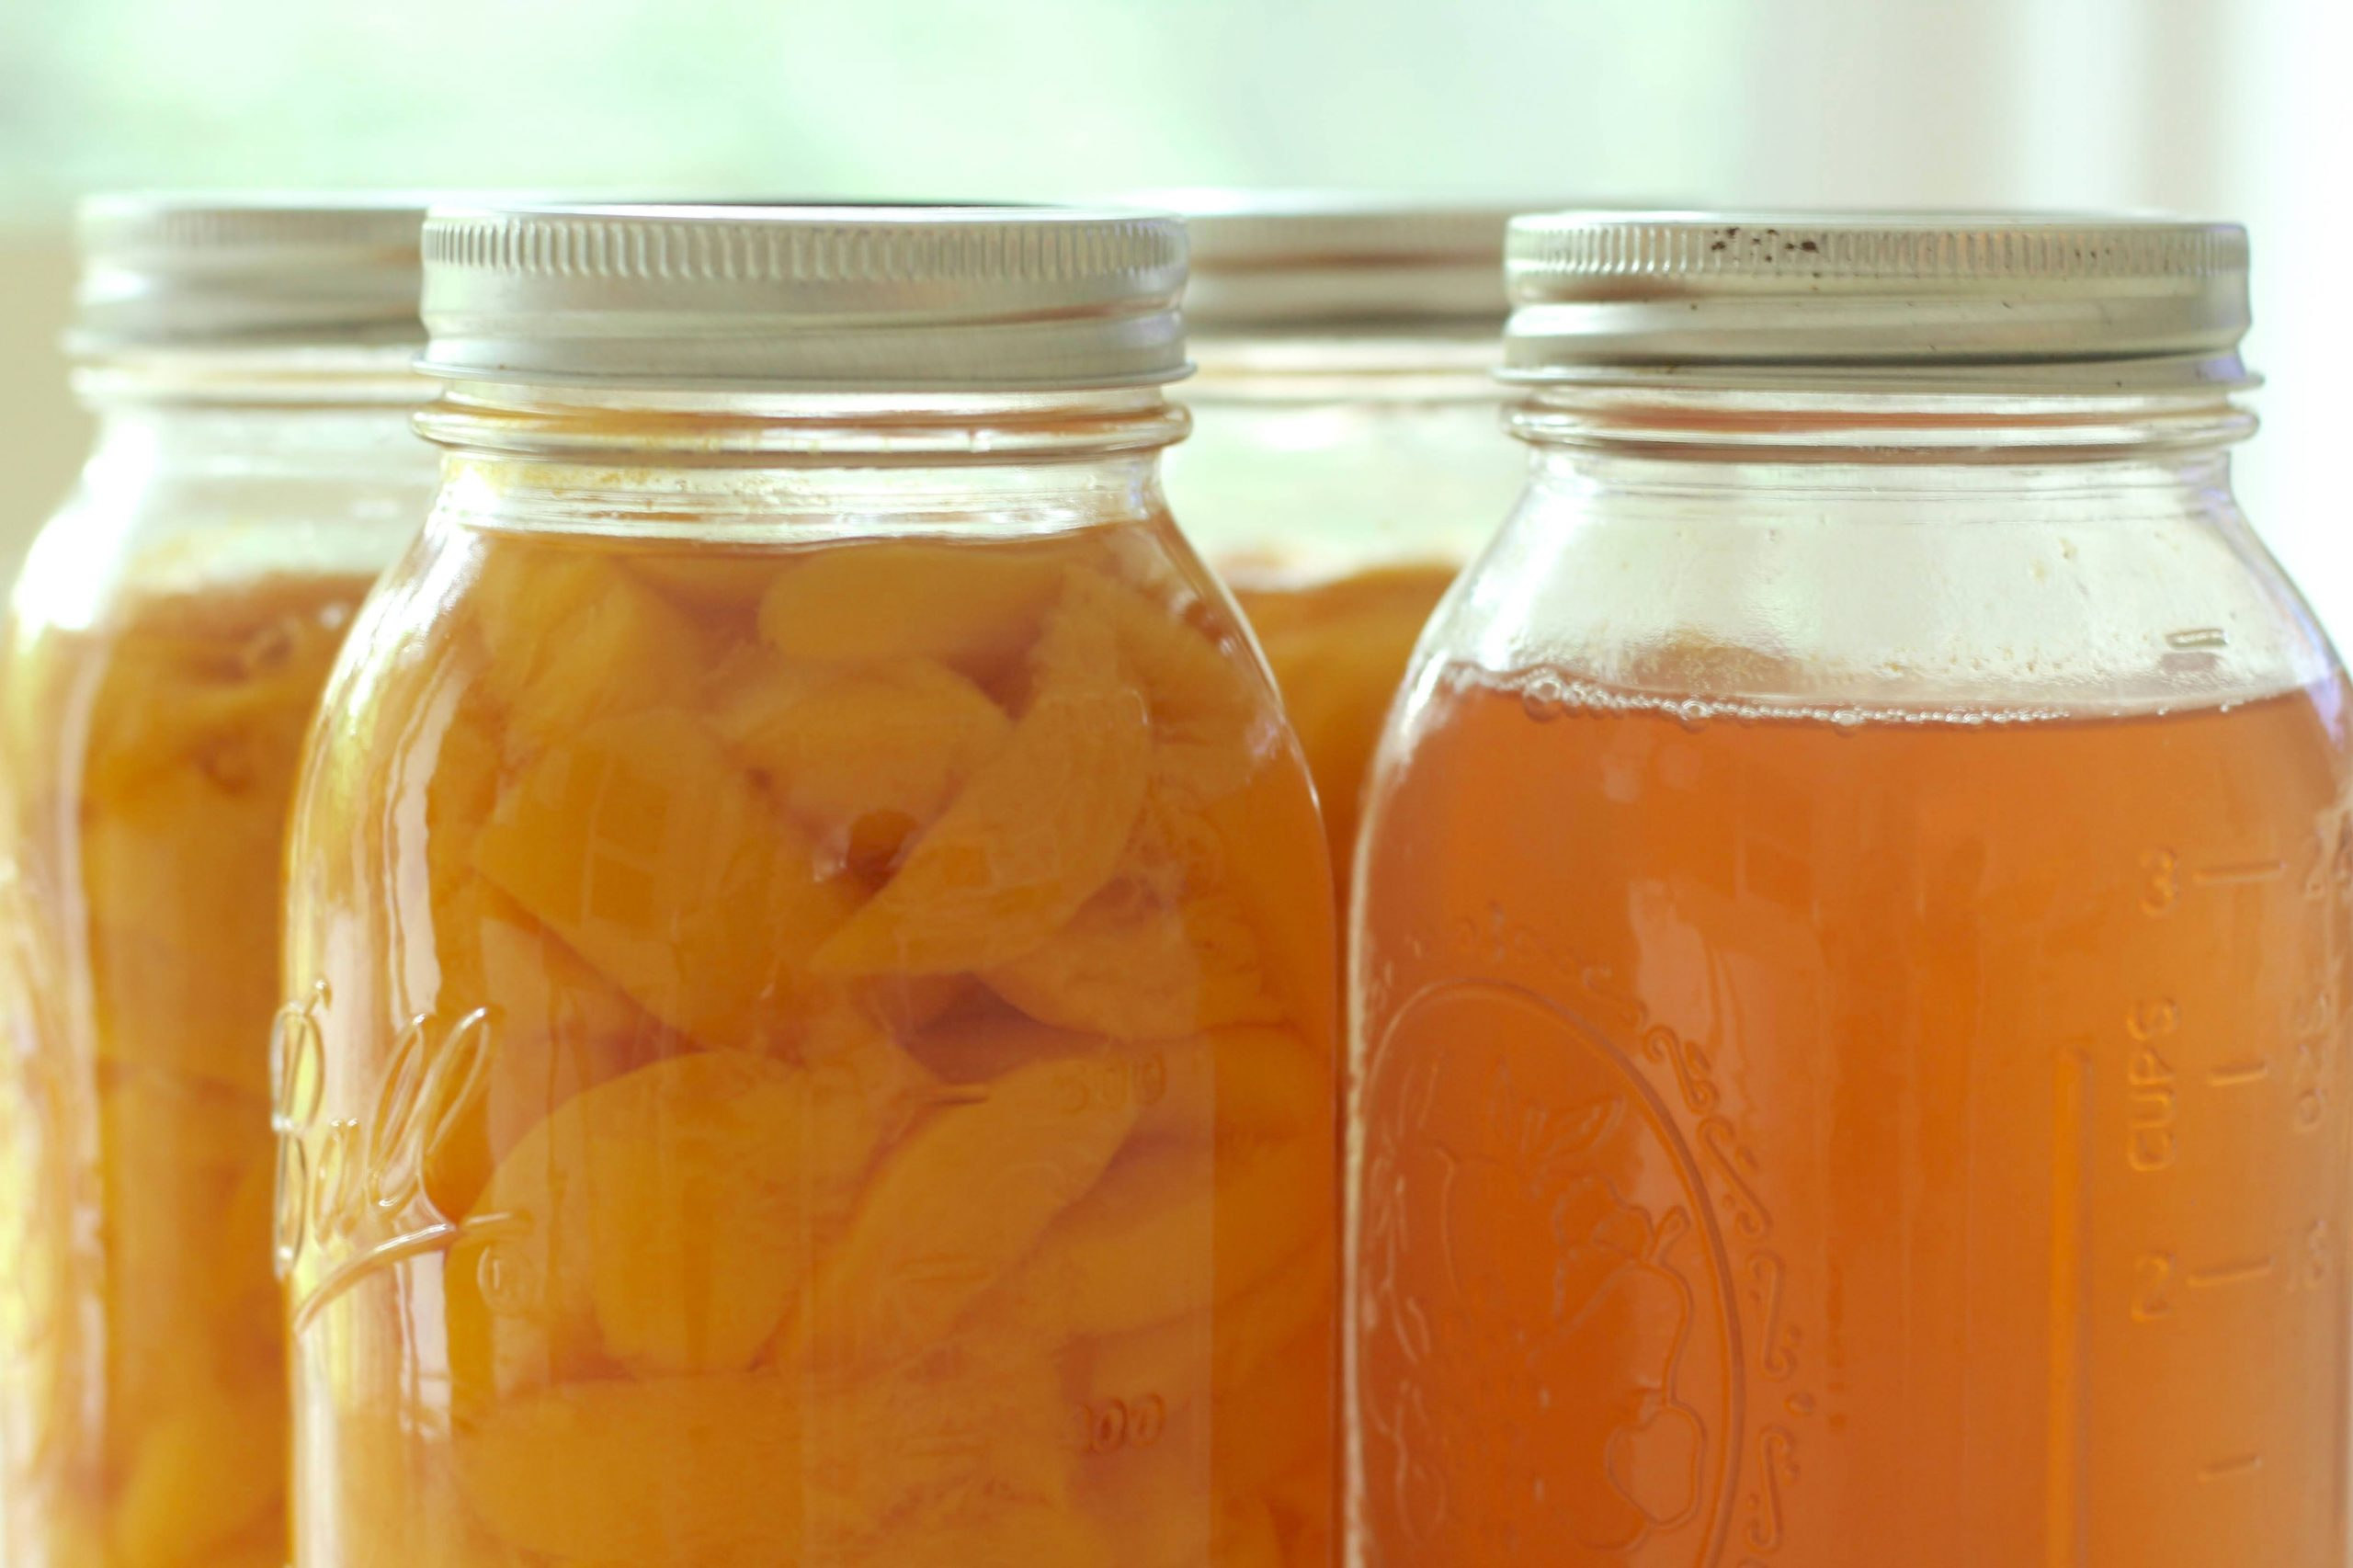 sharing our family's favorite EASY canned peaches in juice recipe. The best part is that this canned peaches recipe makes canned peaches & homemade peach juice. What could be better than 2 recipes in 1! #cannedpeaches #peach #canningrecipes https://lehmanlane.net